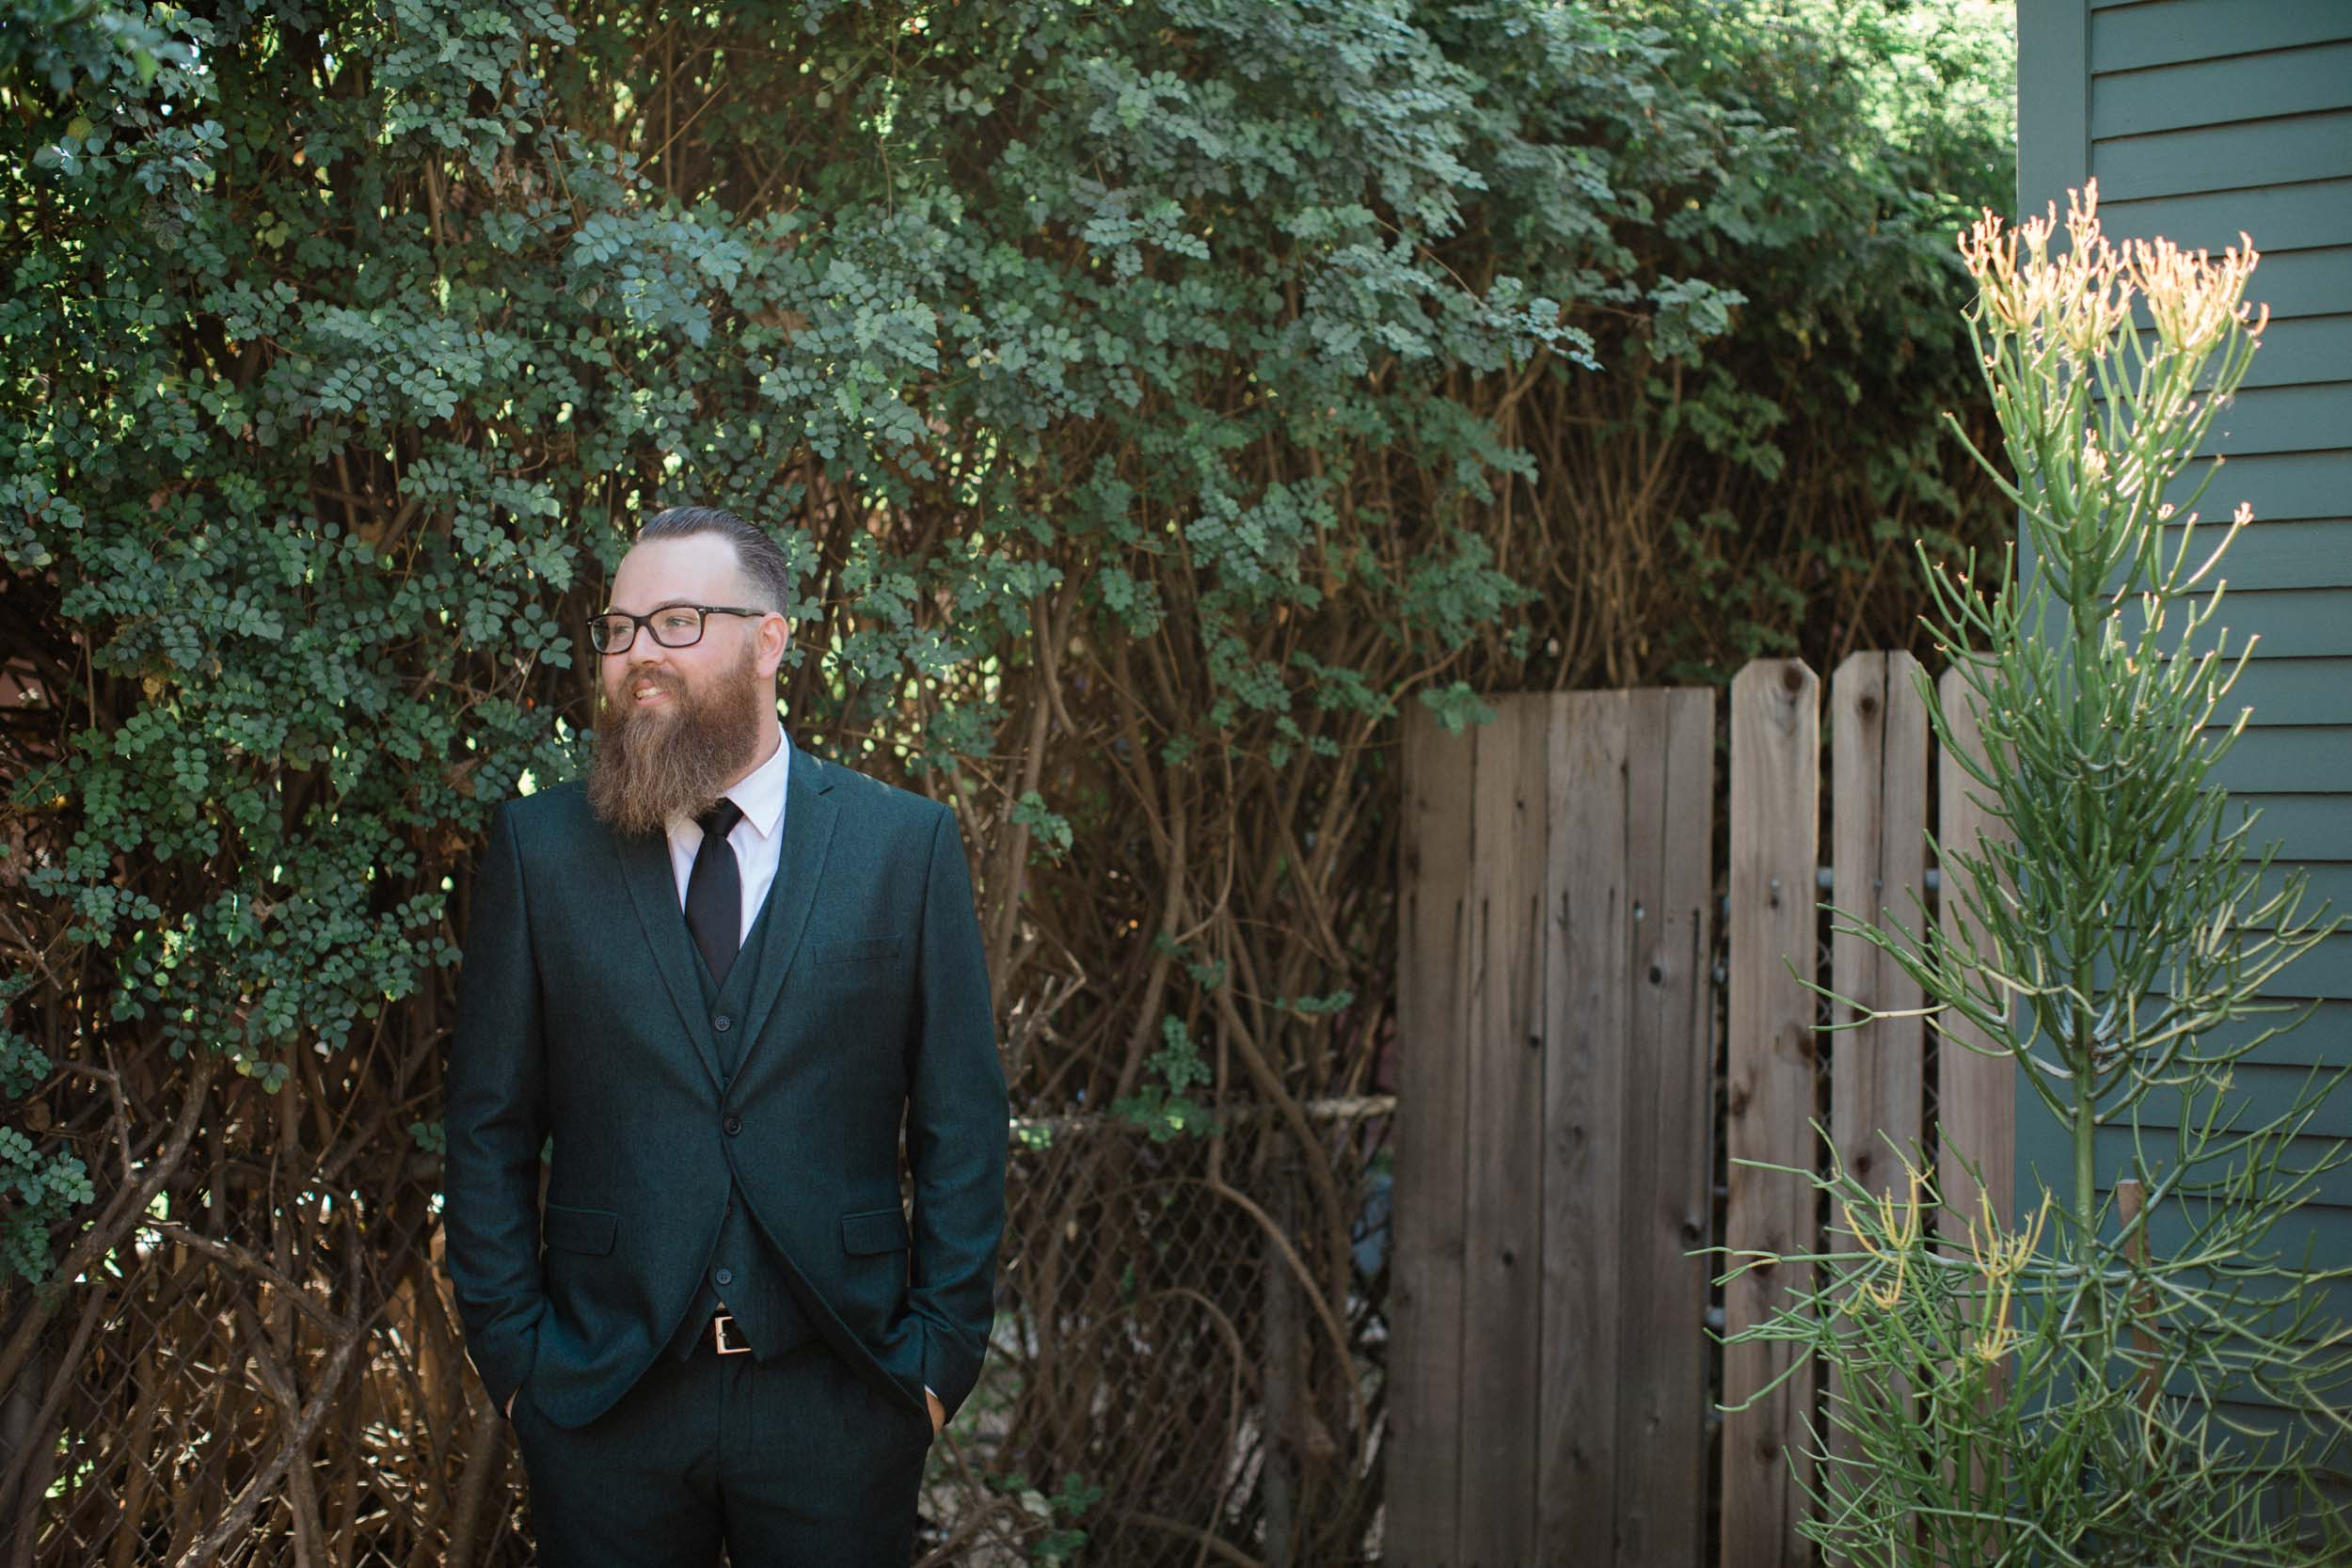 BKM-Photography-Highland-Park-Los-Angeles-Backyard-DIY-Wedding-0053.jpg